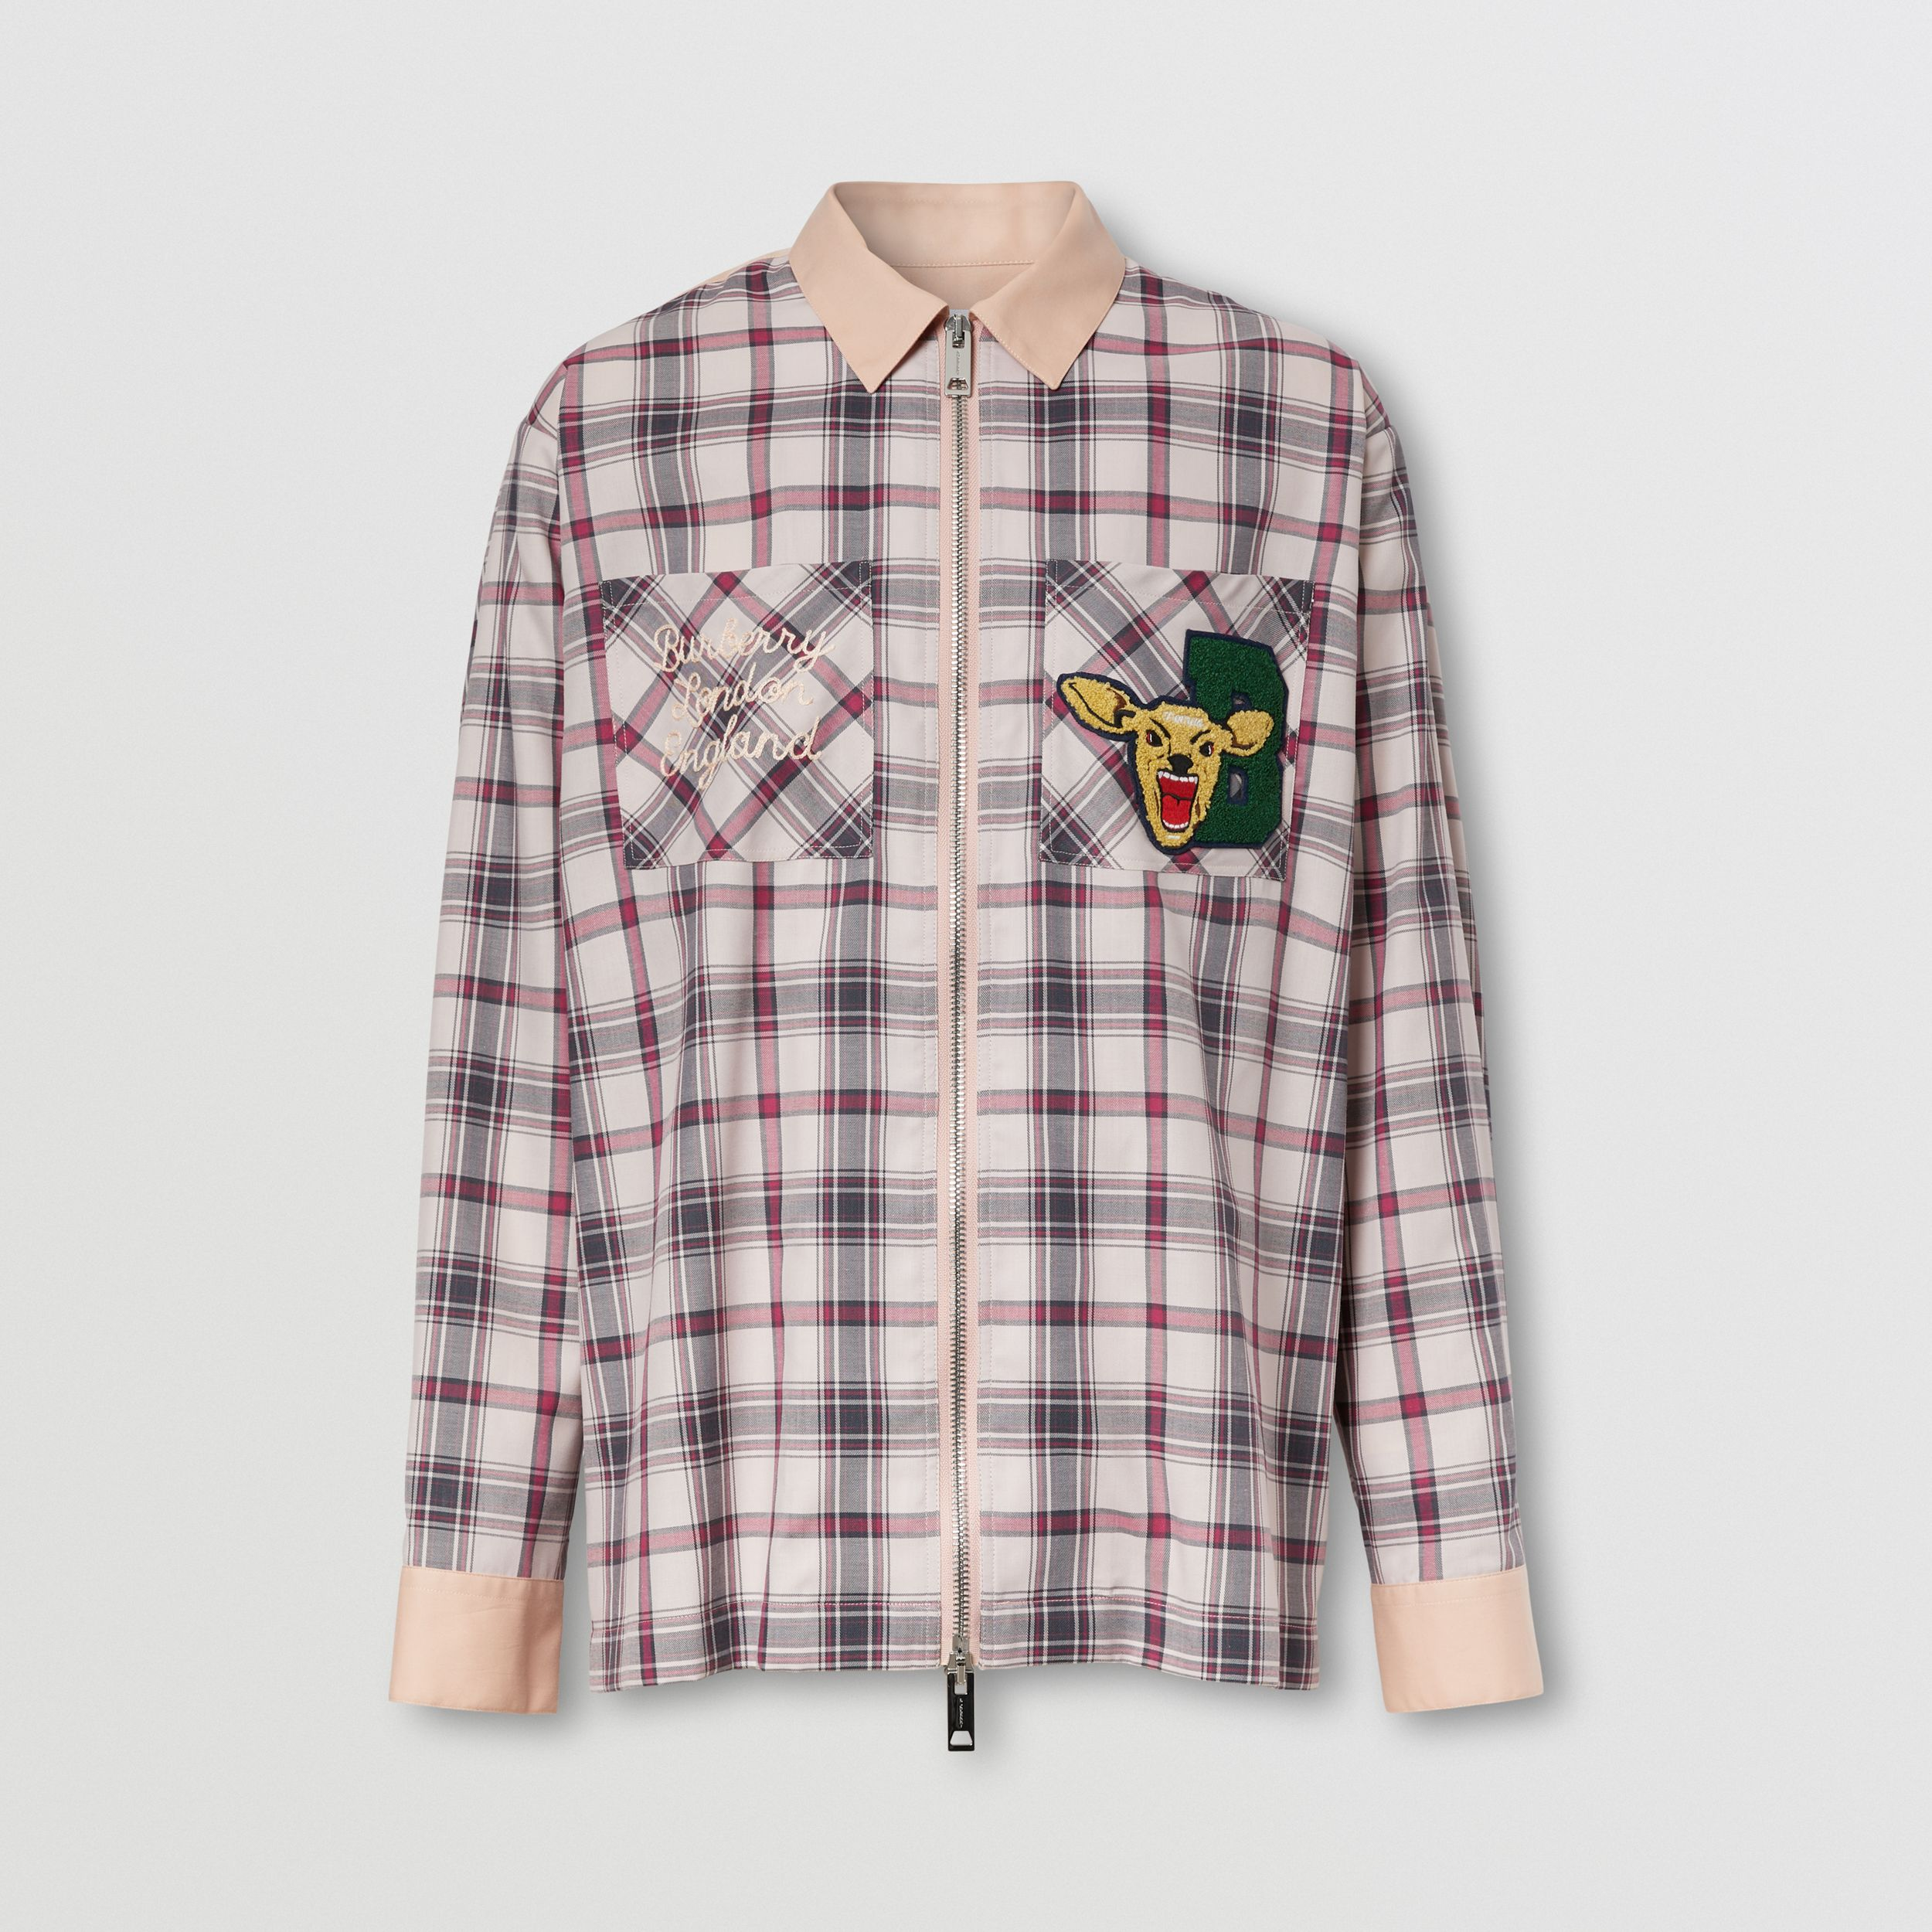 Varsity Graphic Check Technical Cotton Overshirt in Frosted Pink - Men | Burberry - 4